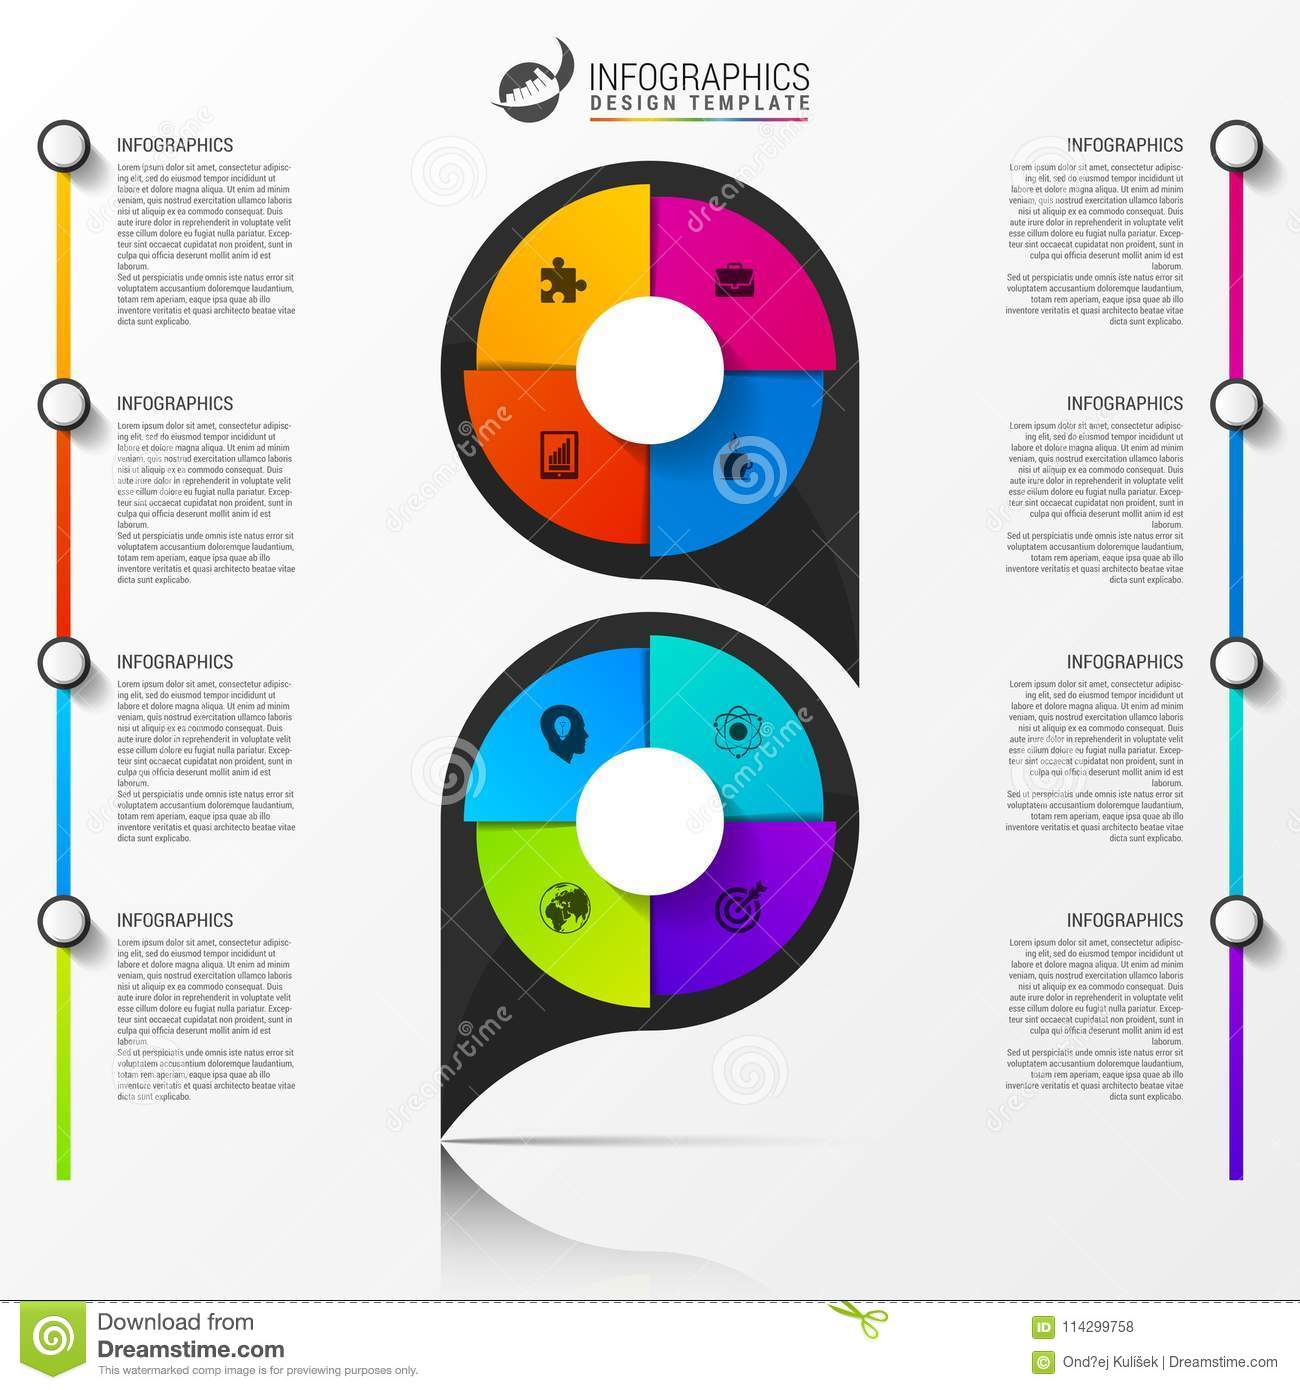 Infographic Design Template Organization Chart With 8 Steps Stock